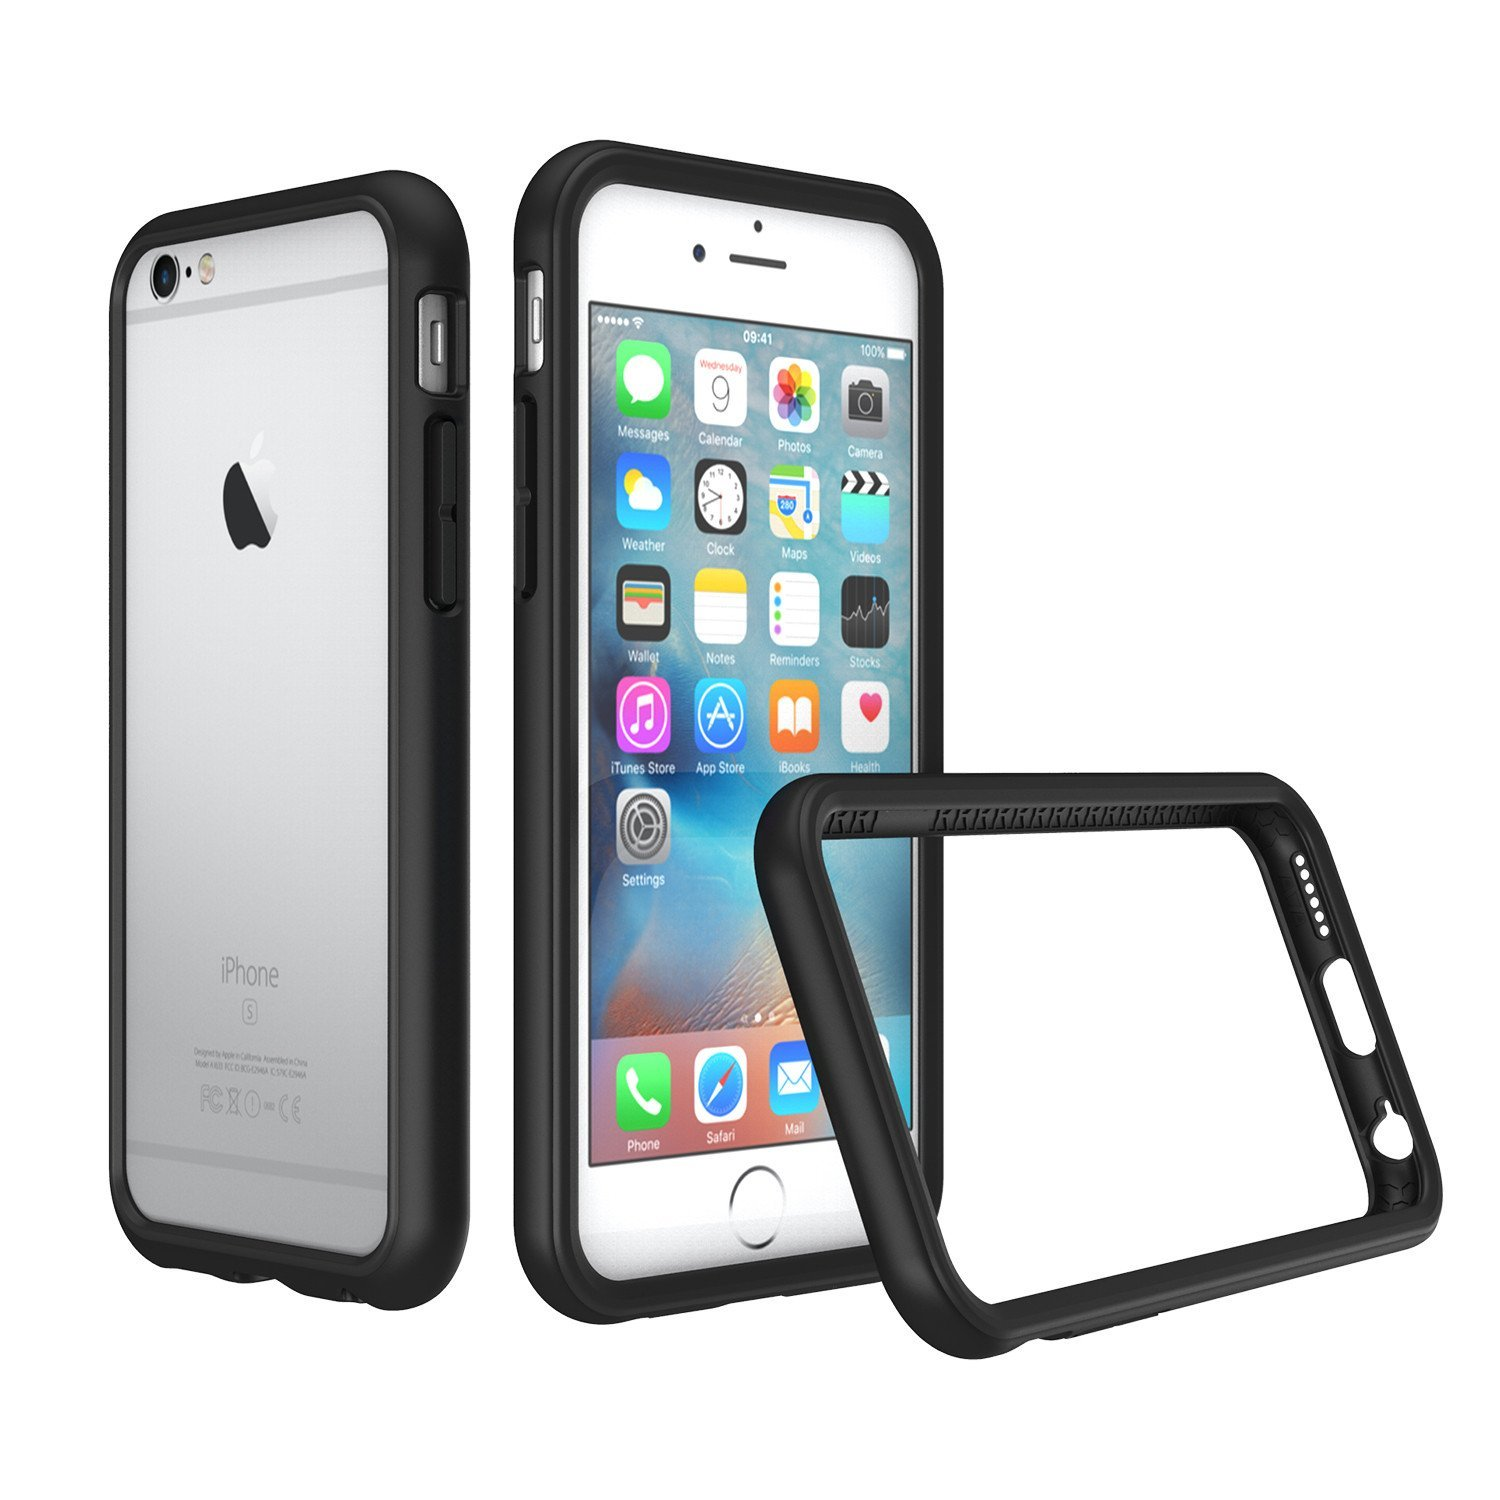 RhinoShield Bumper Case for iPhone 6 Plus/iPhone 6S Plus [CrashGuard] | Shock Absorbent Slim Design Protective Cover [3.5 M / 11ft Drop Protection] - Black by RhinoShield